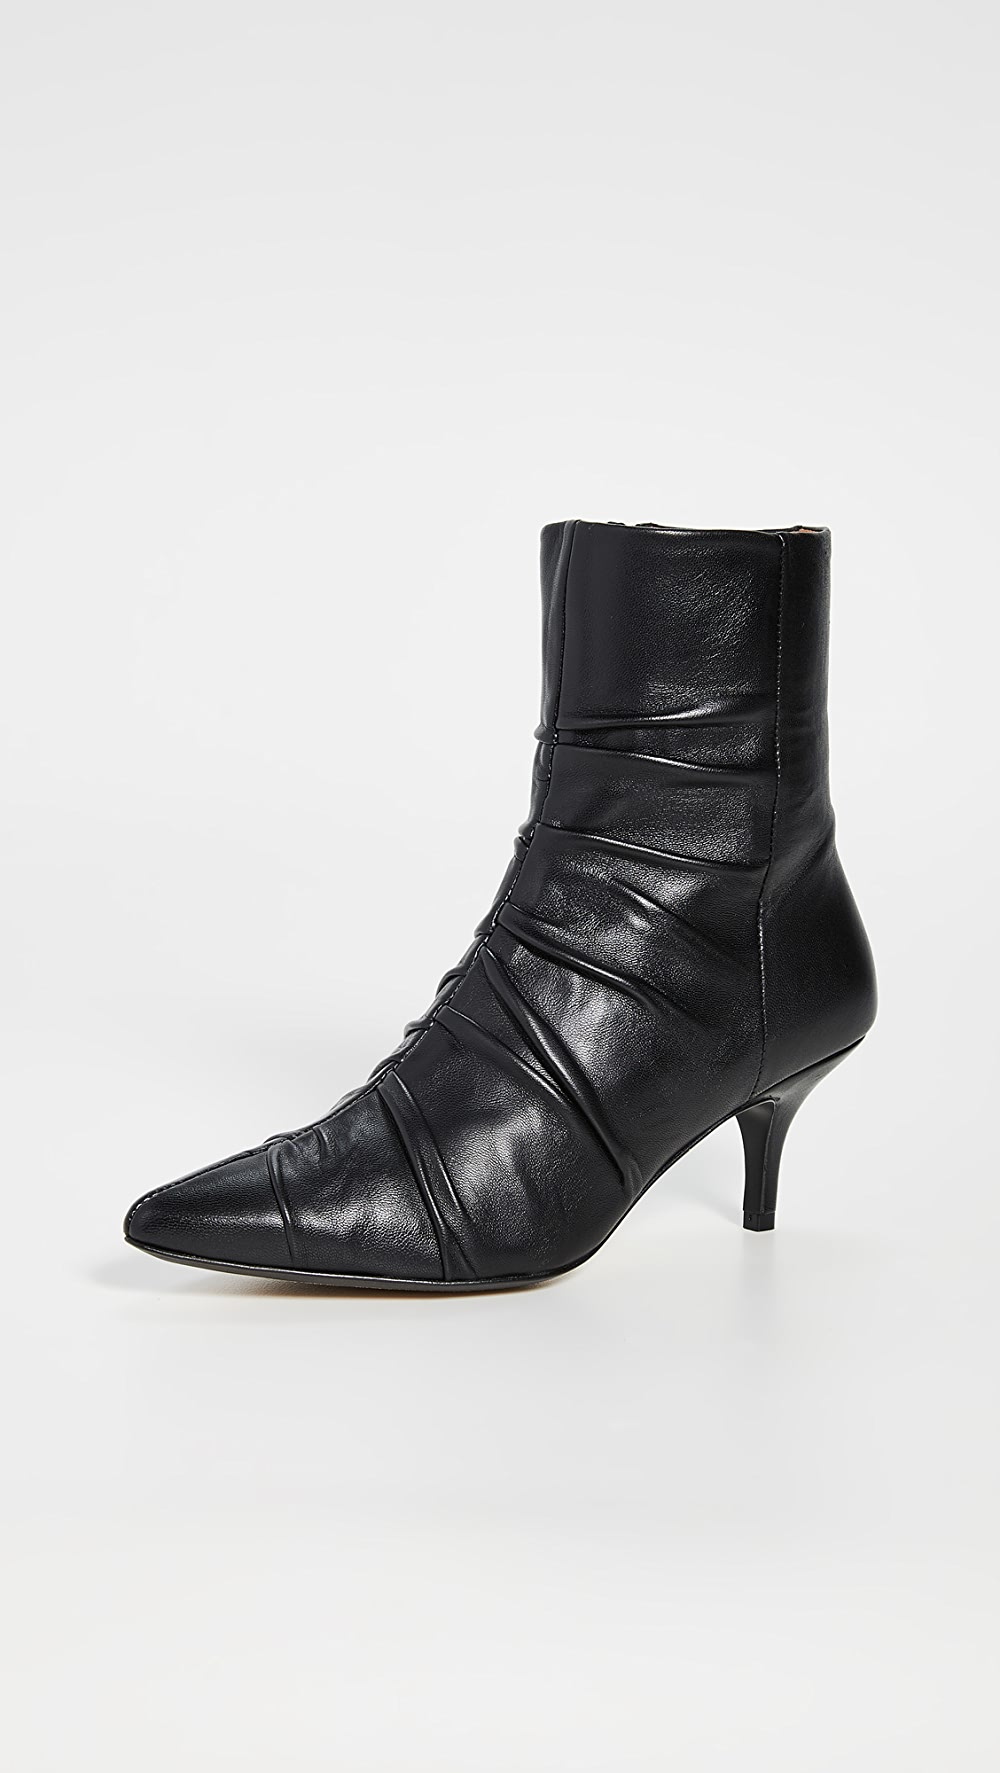 Ambitious Joseph - Bianca Ankle Boots Clearance Price